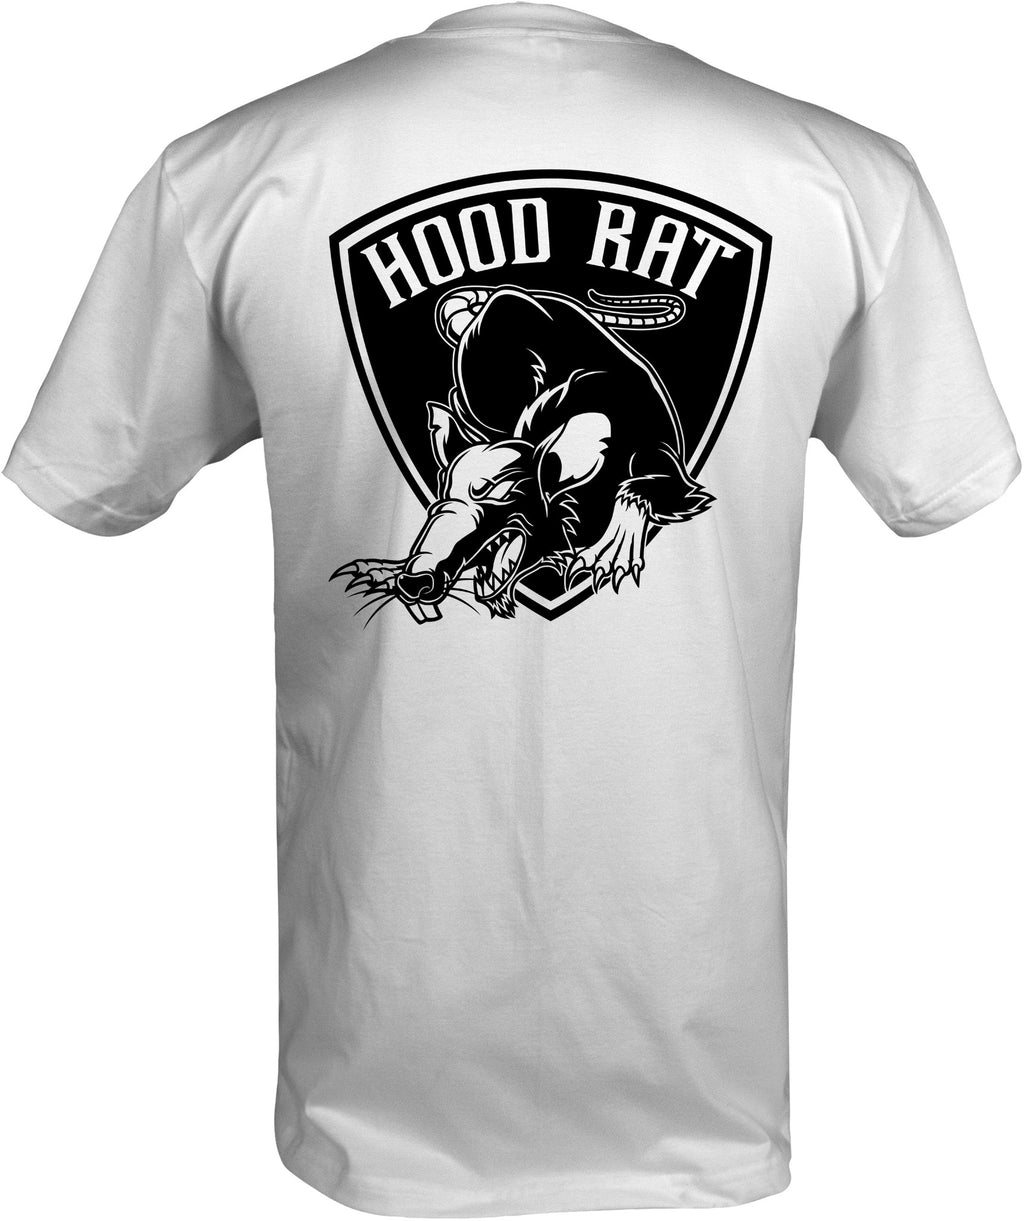 men's shirt, Bolts & Hose and Hood Rat Nation logo for motorcycle riders and tradesmen